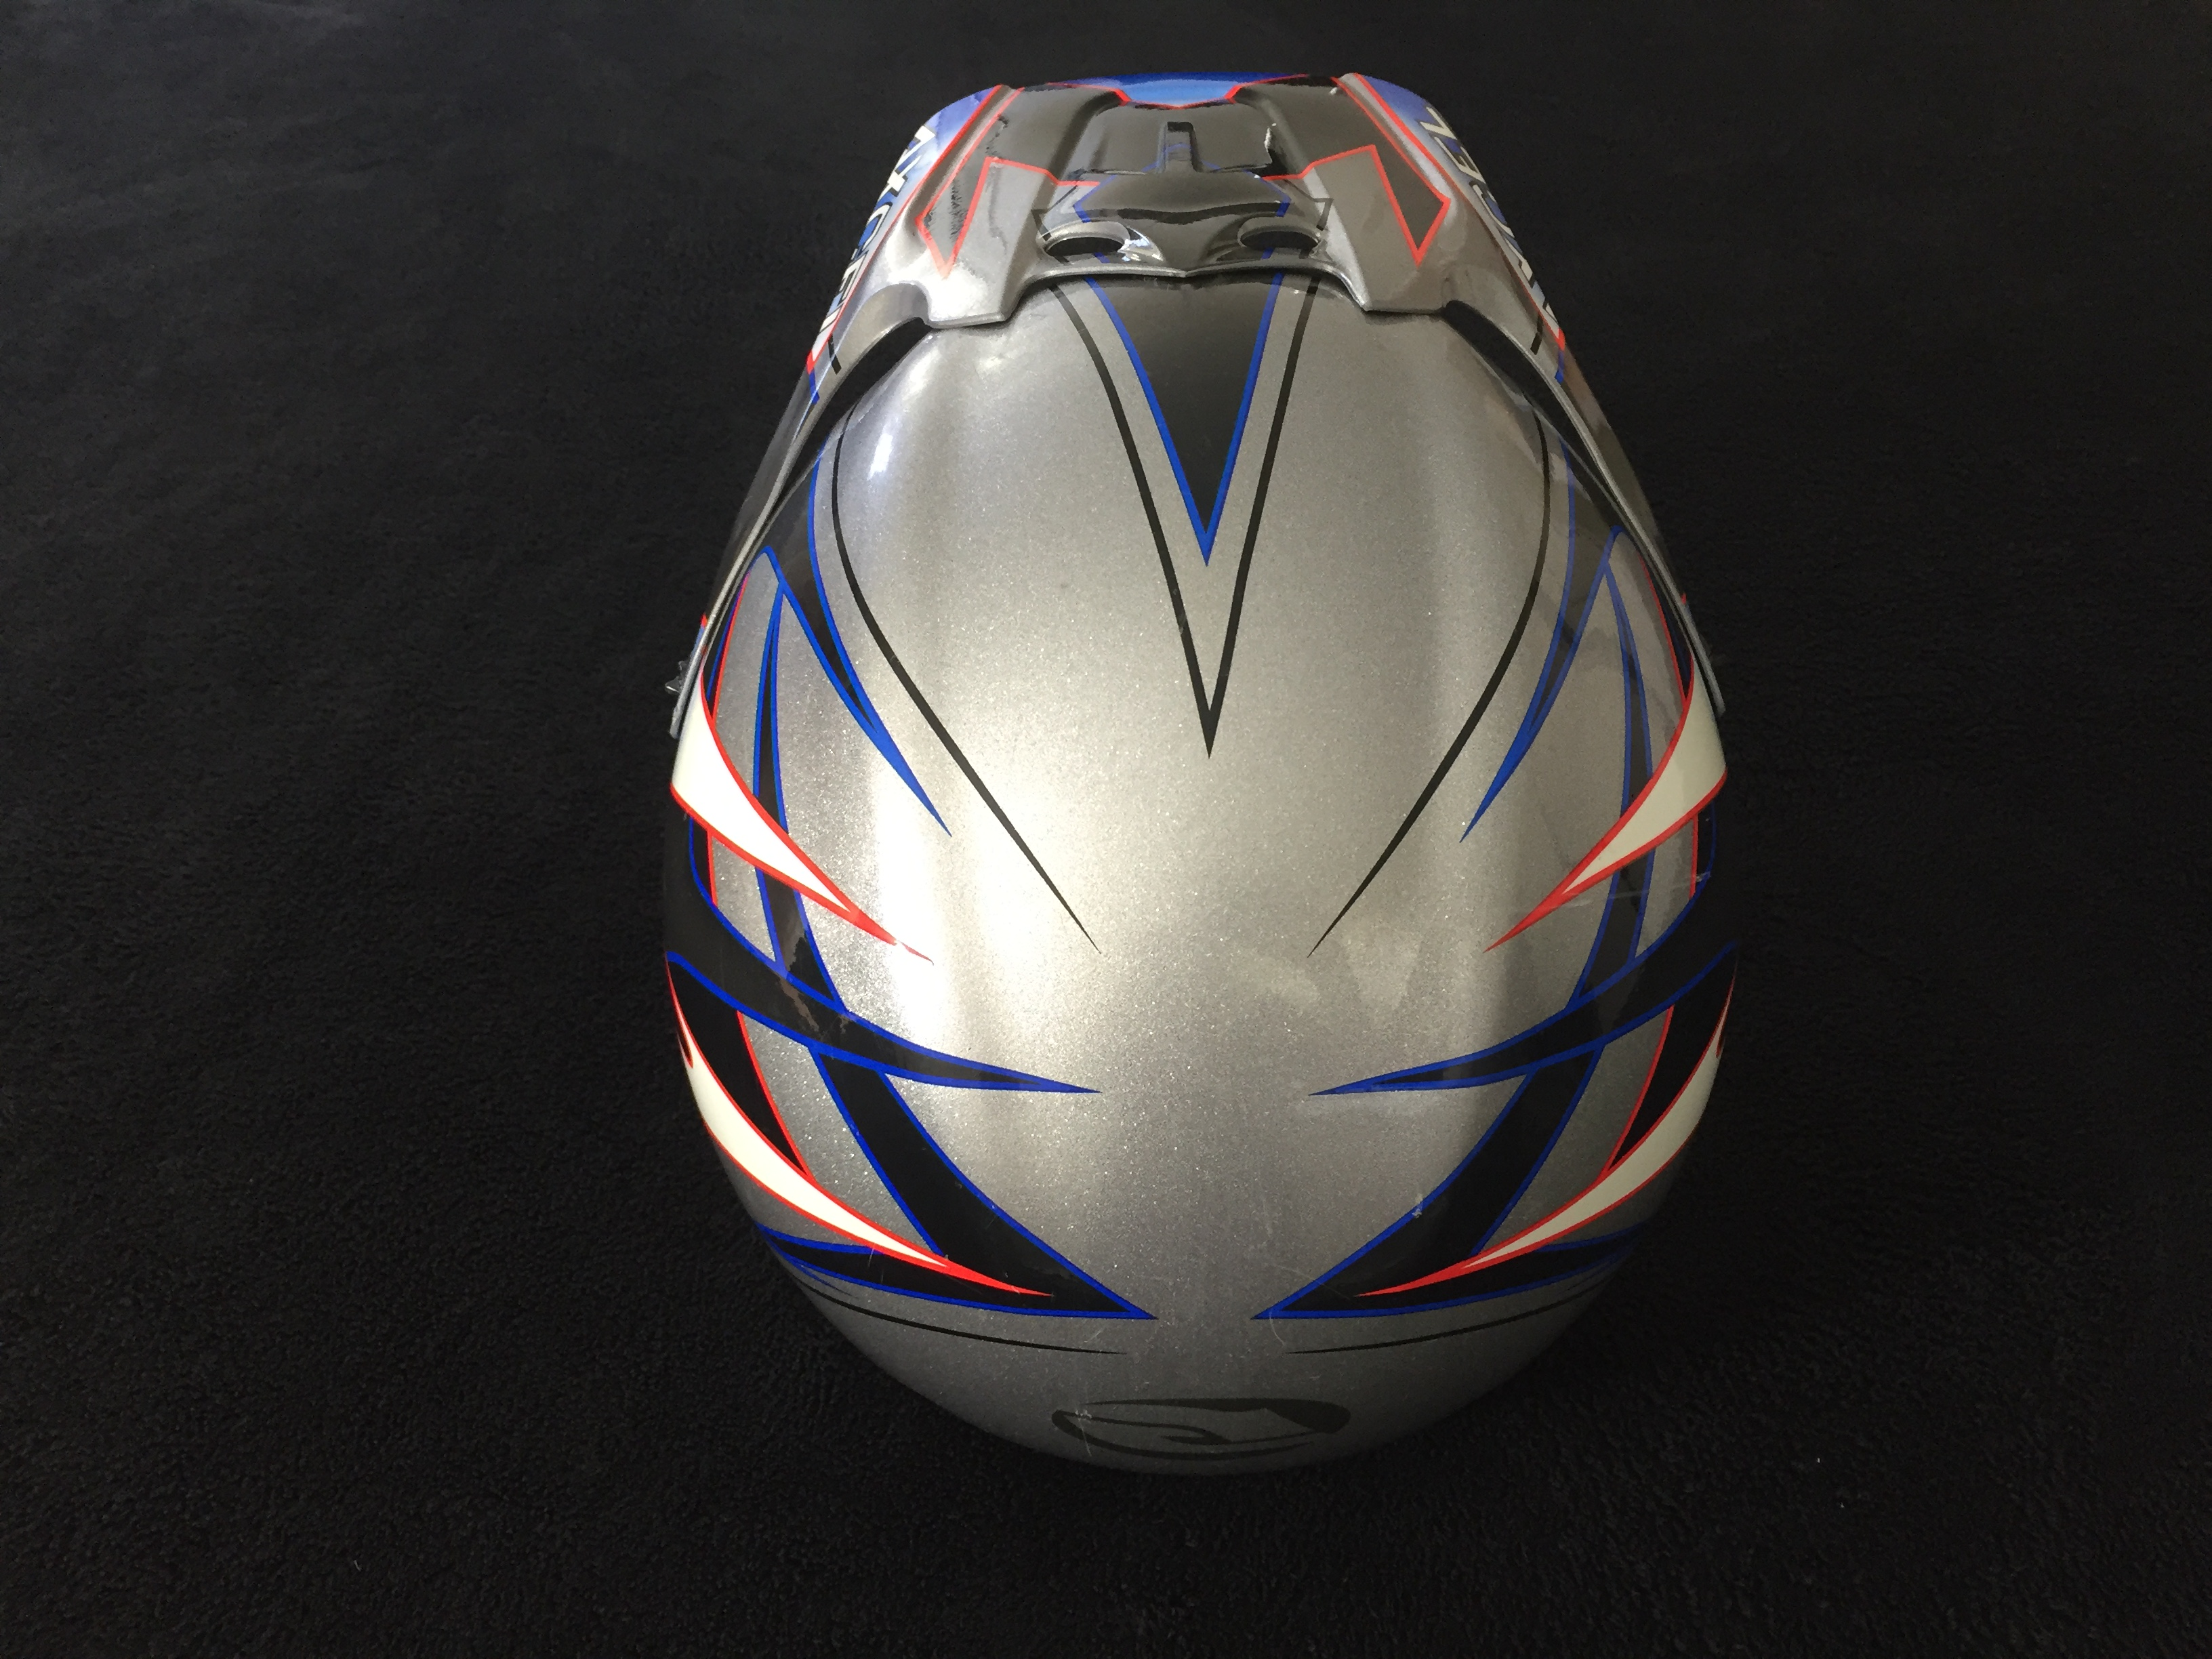 Custom Painted Helmets And Body Work From Rippin Designs